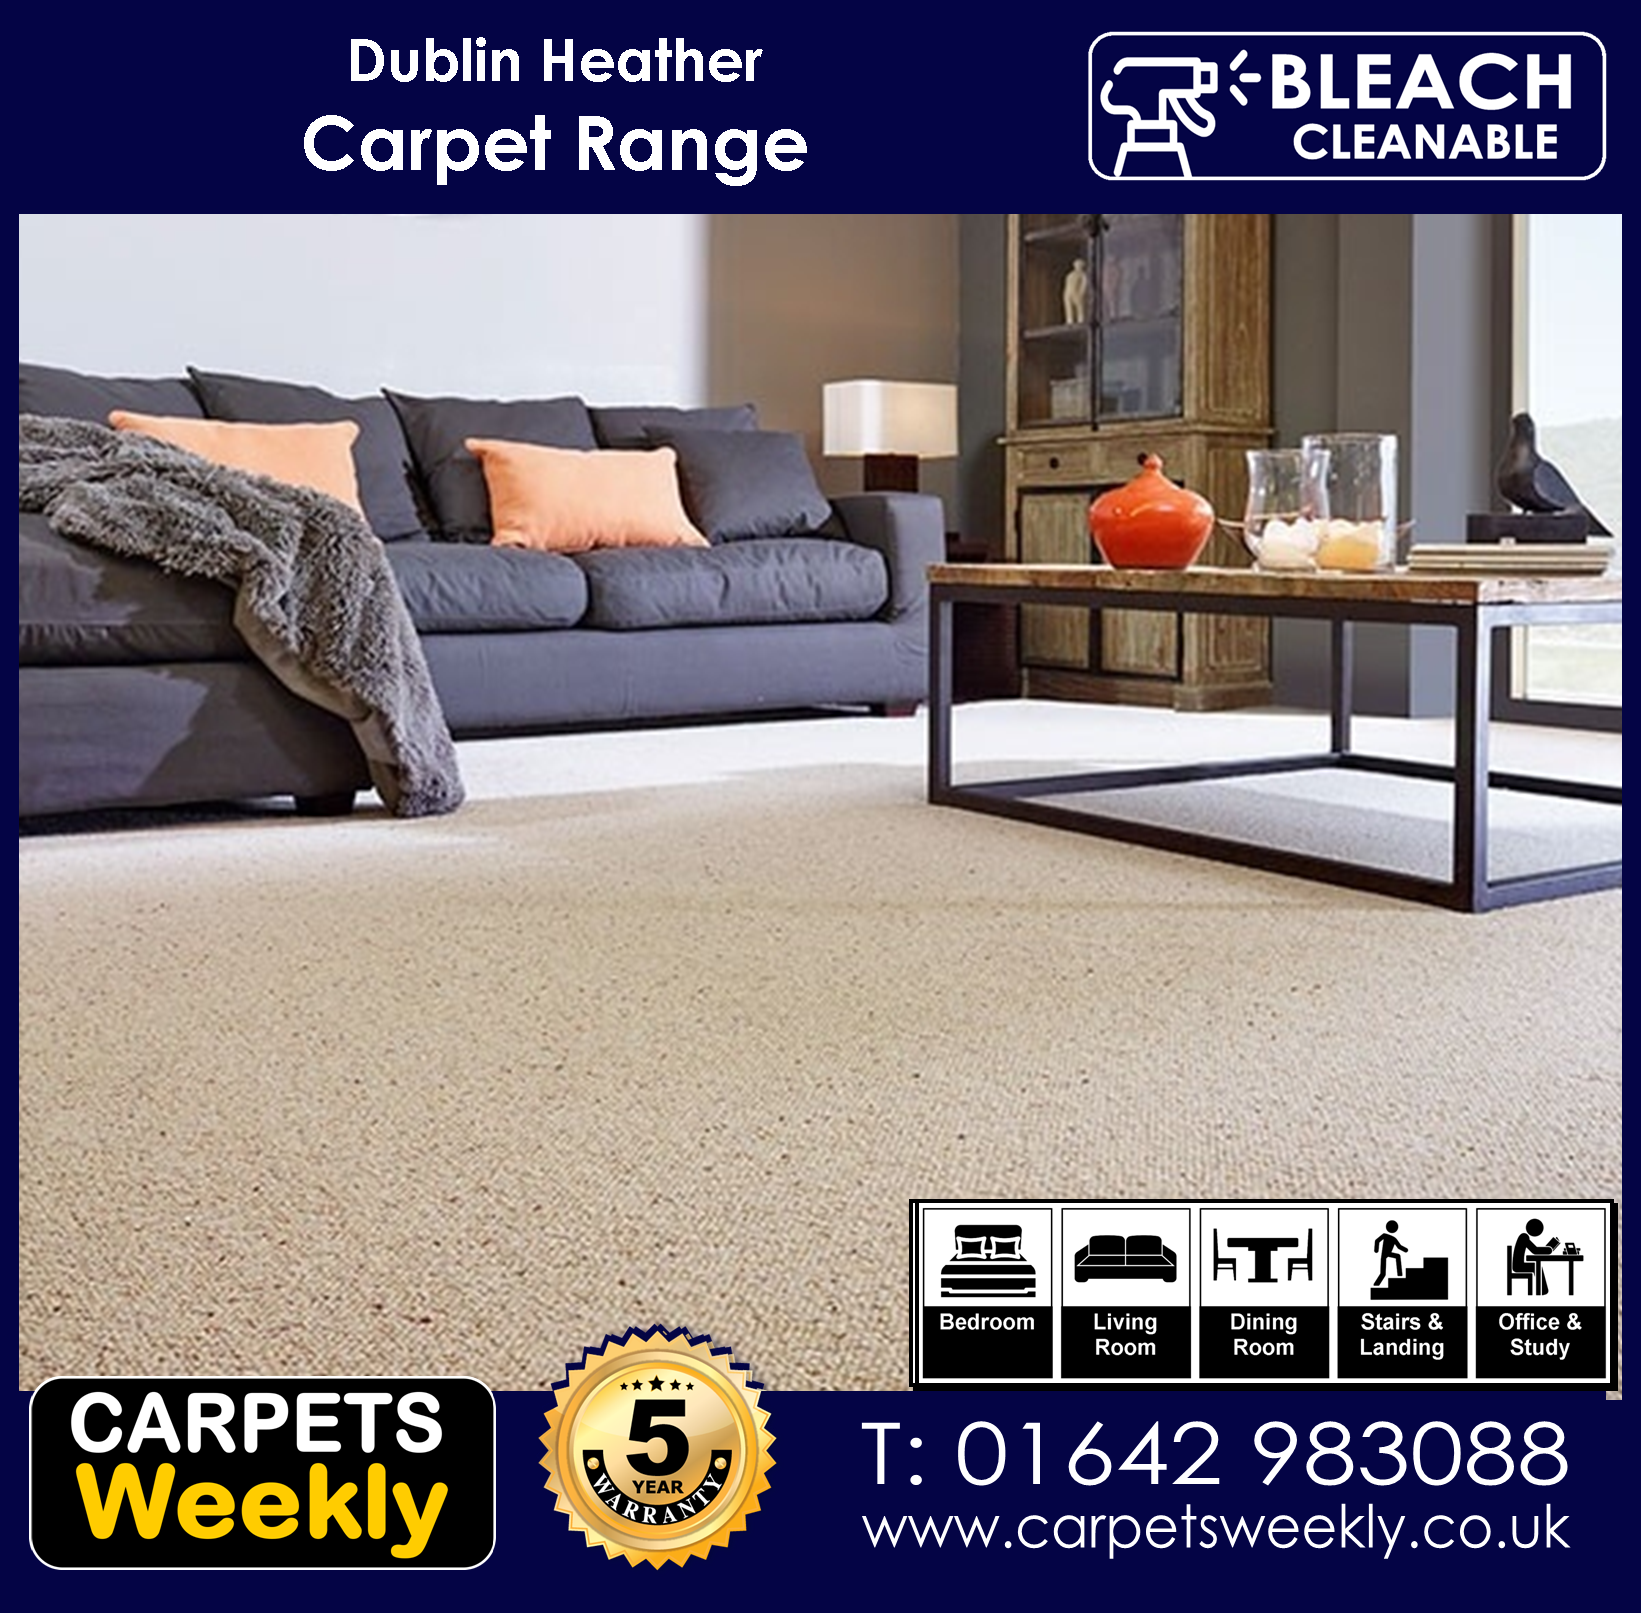 Dublin Heathers Carpet Range from Carpets Weekly